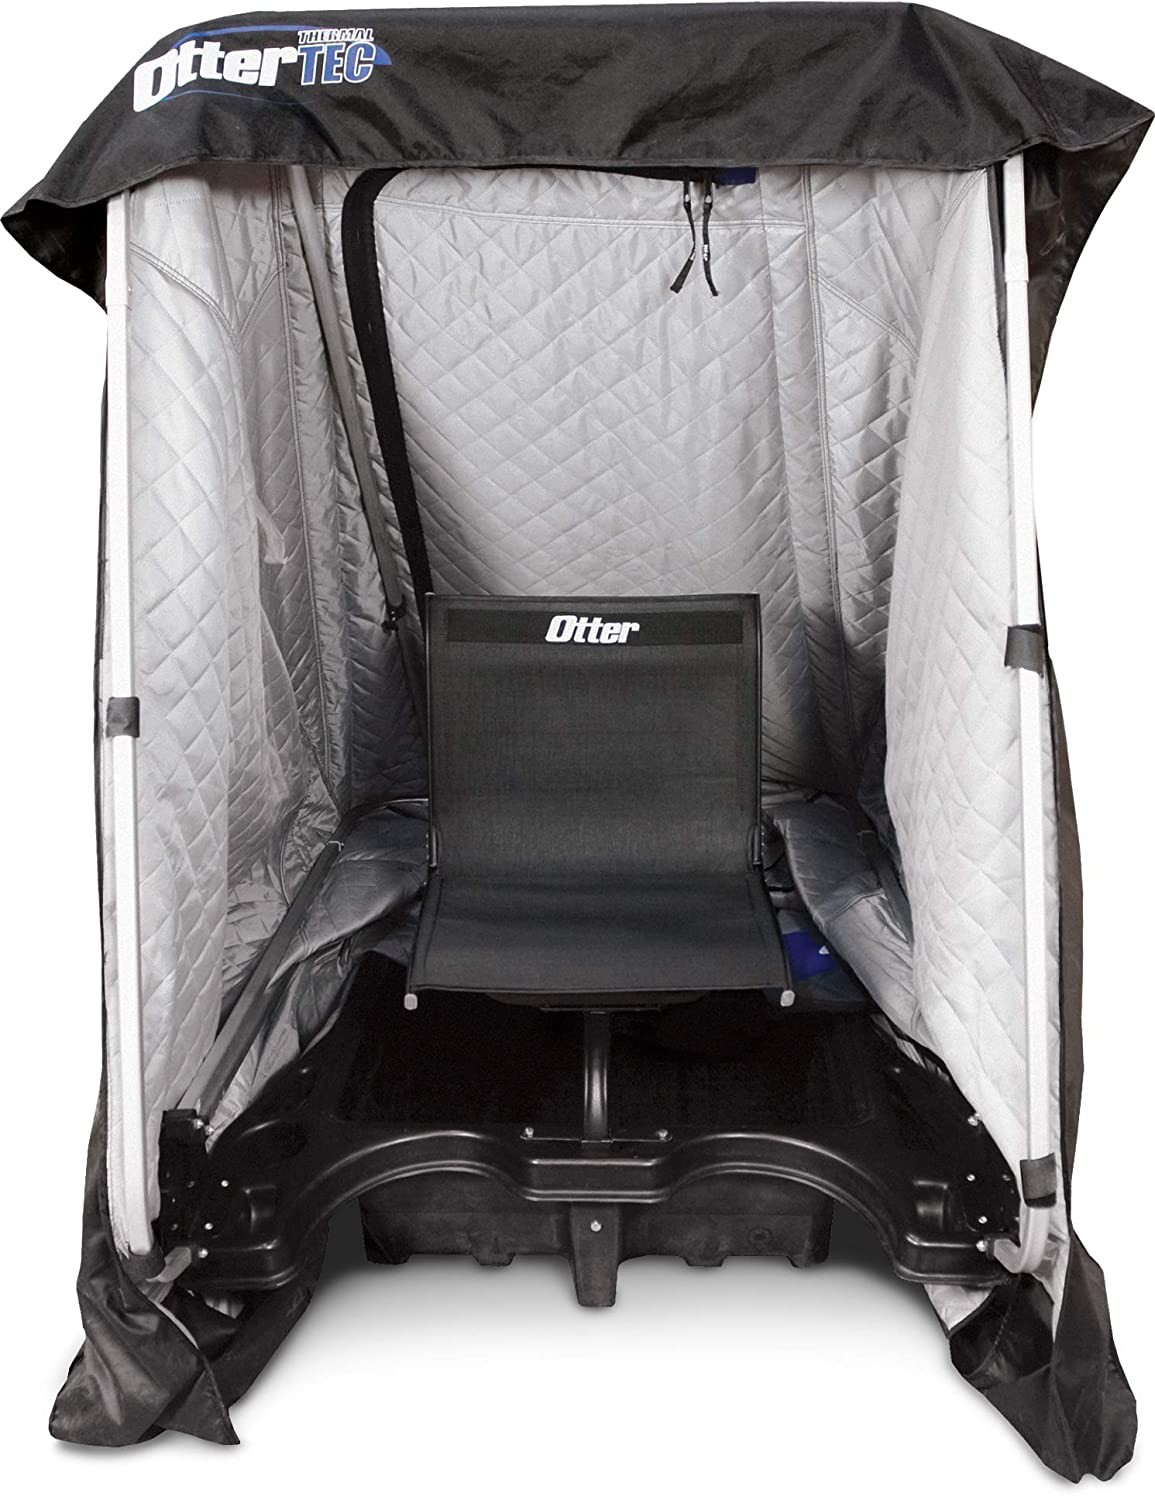 Amazon com : OTTER Xt Hideout Package 200960 : Sports & Outdoors